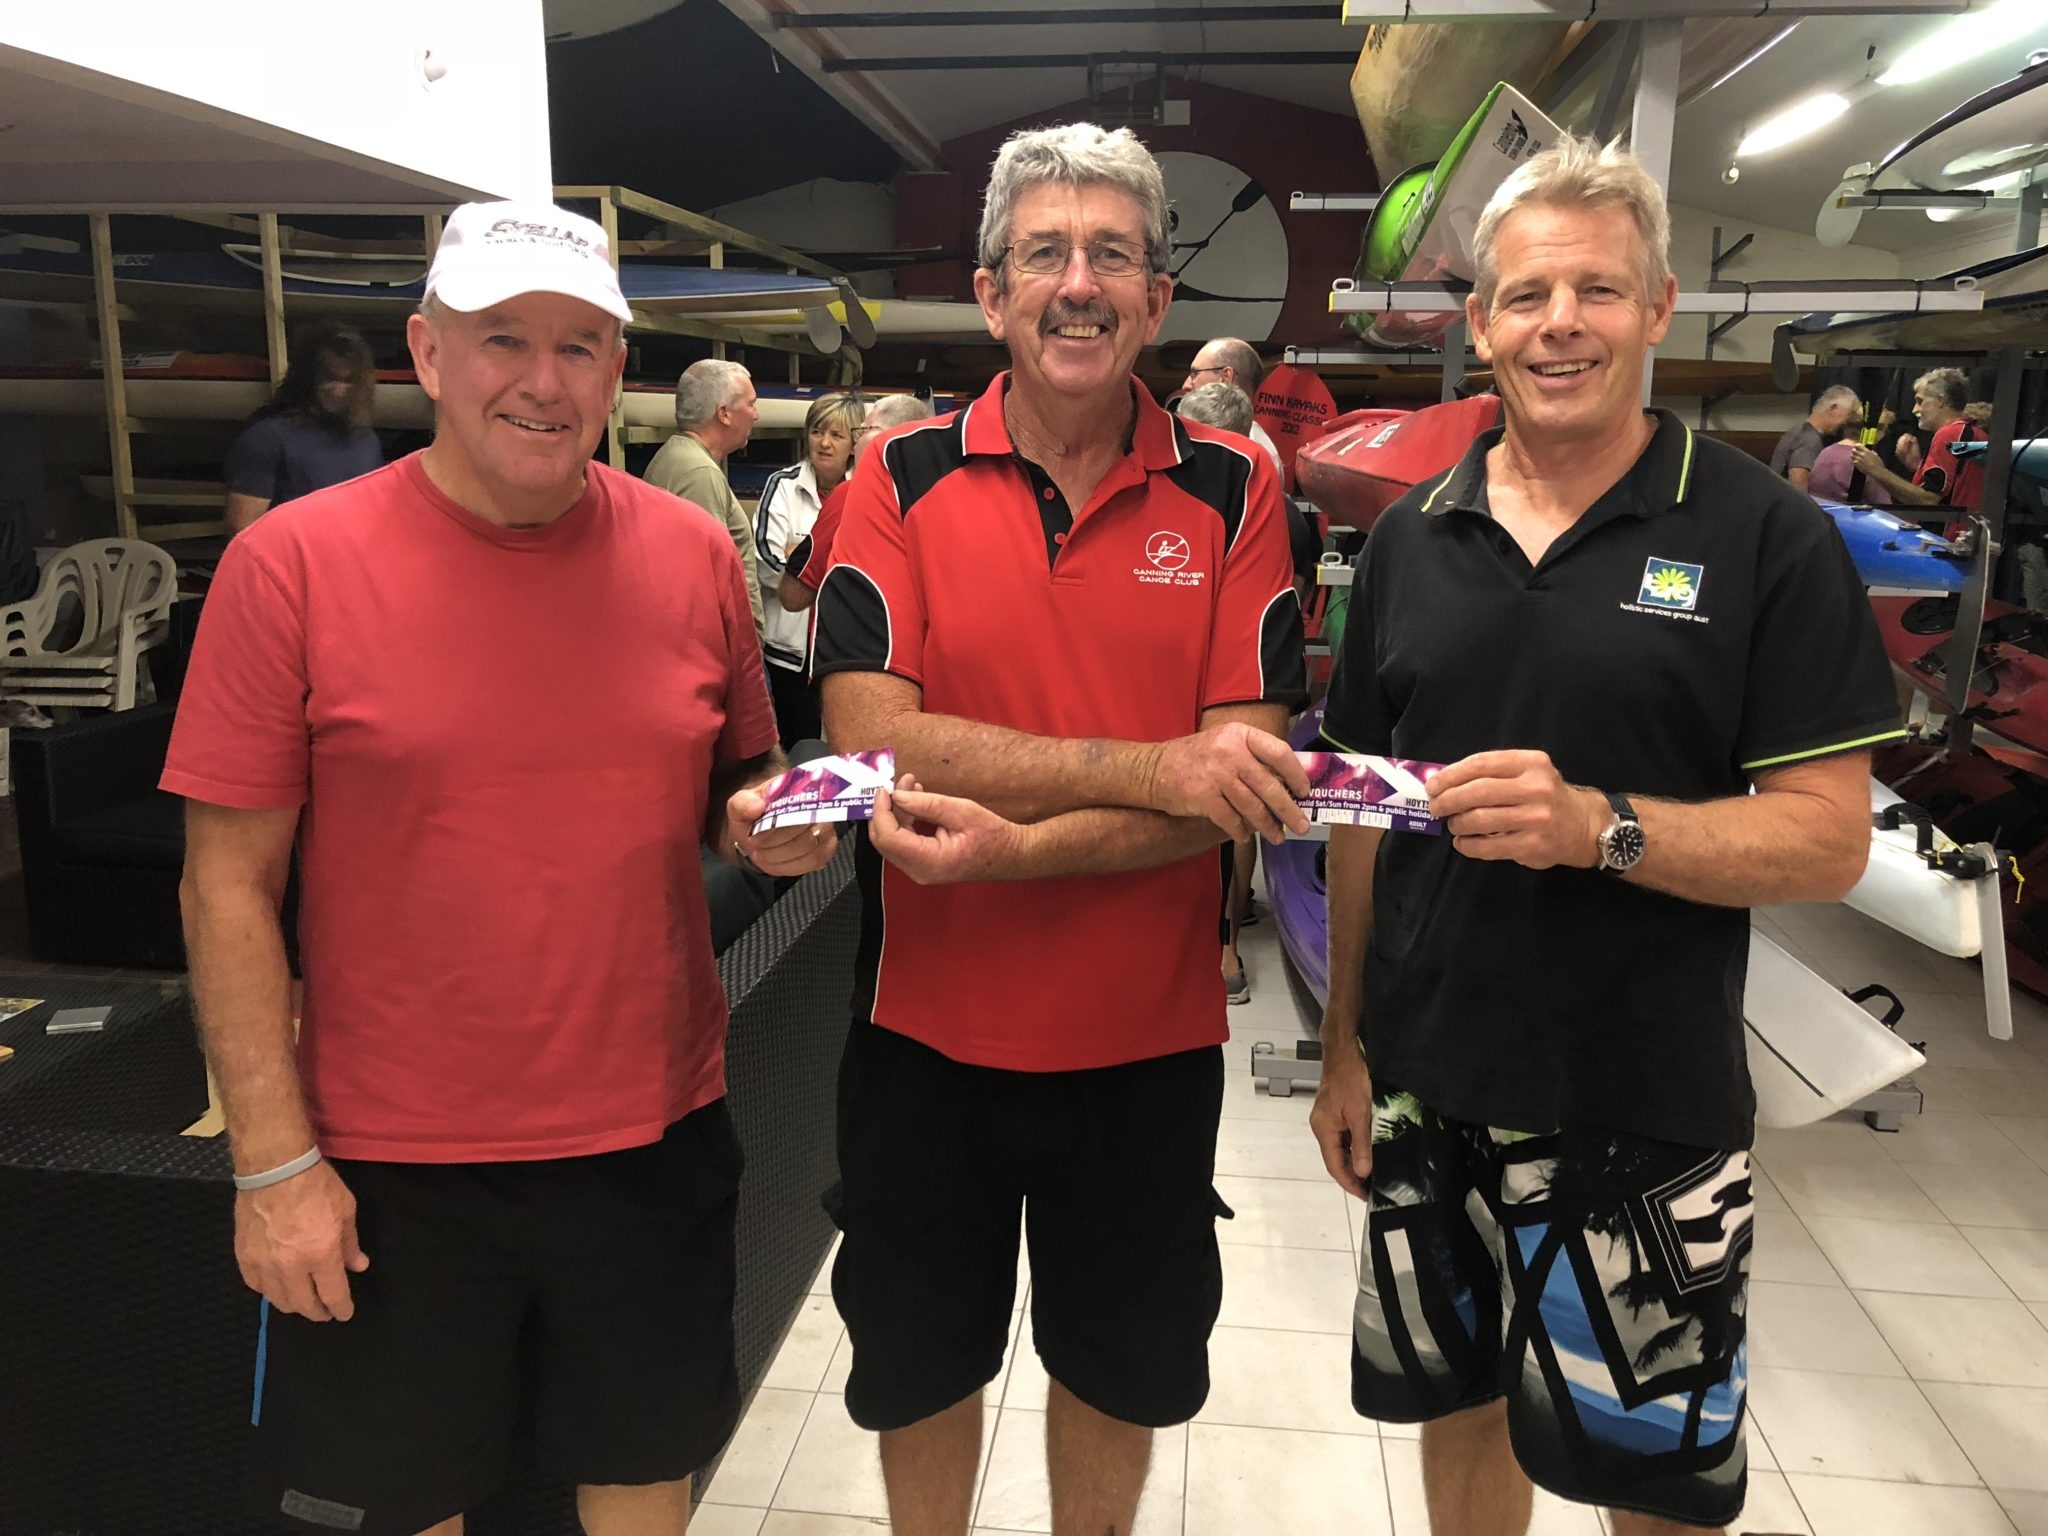 Tuesday 20th February 2018 : Tonight's photo shows Club Committee Member Dave Griffiths presenting tonight's winners Steve Mitchinson and Gary Killian with movie vouchers.